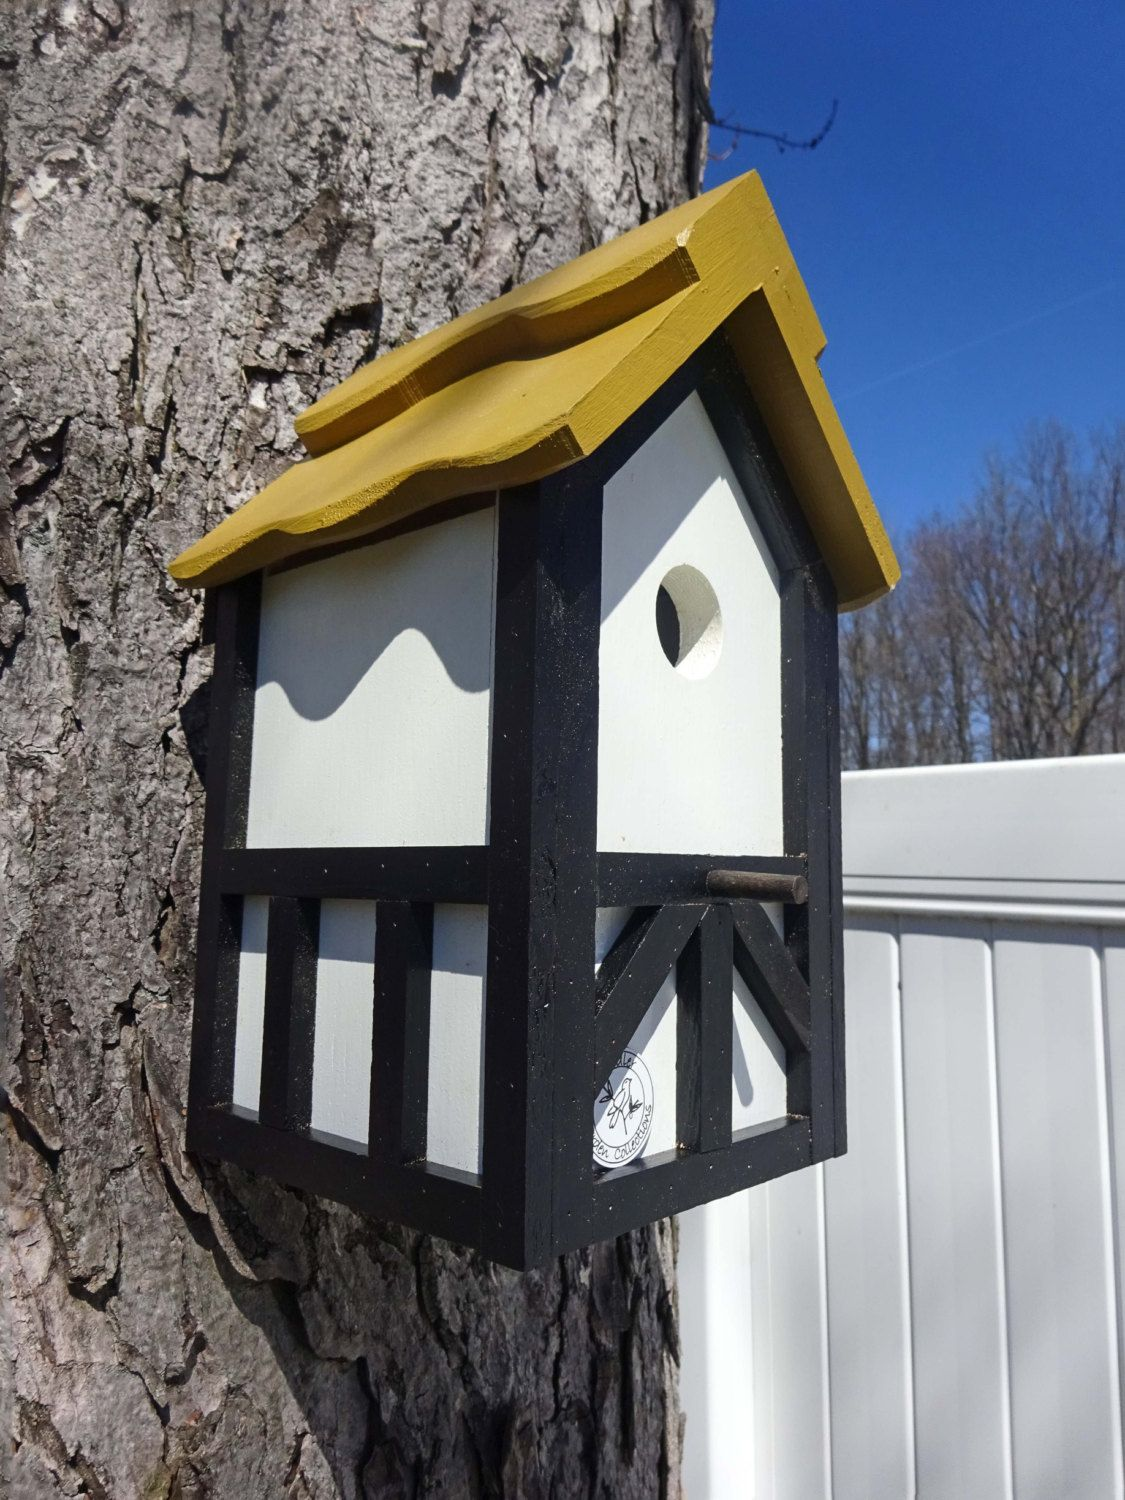 Tudor Birdhouse Wood Nesting Box Old English Bird House Birdhouse With Cleanout Handmade Tree Mount Post Mount Gold Ro Bird Houses Bird House Brown Roofs